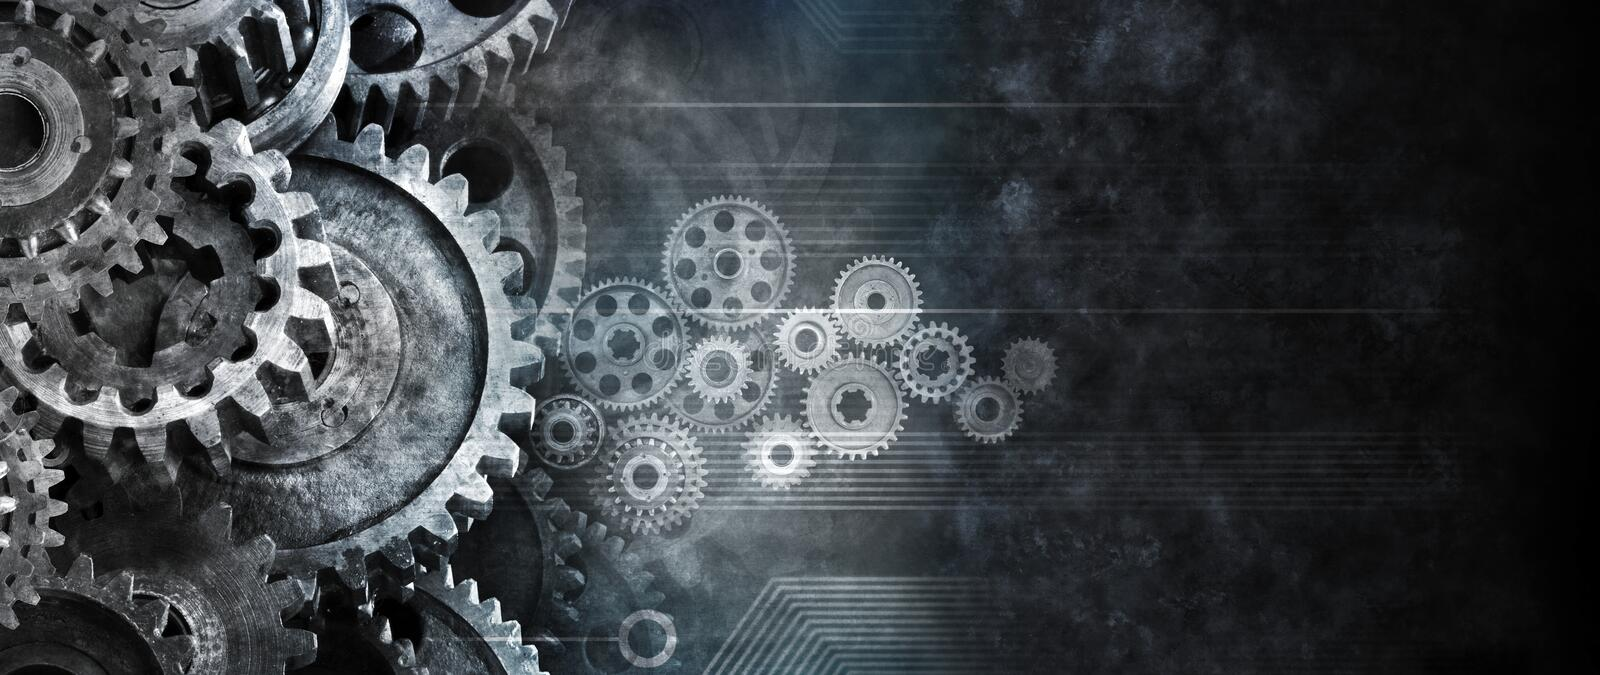 Business Cogs Technology Banner Background. A banner background with cogs and computer circuits